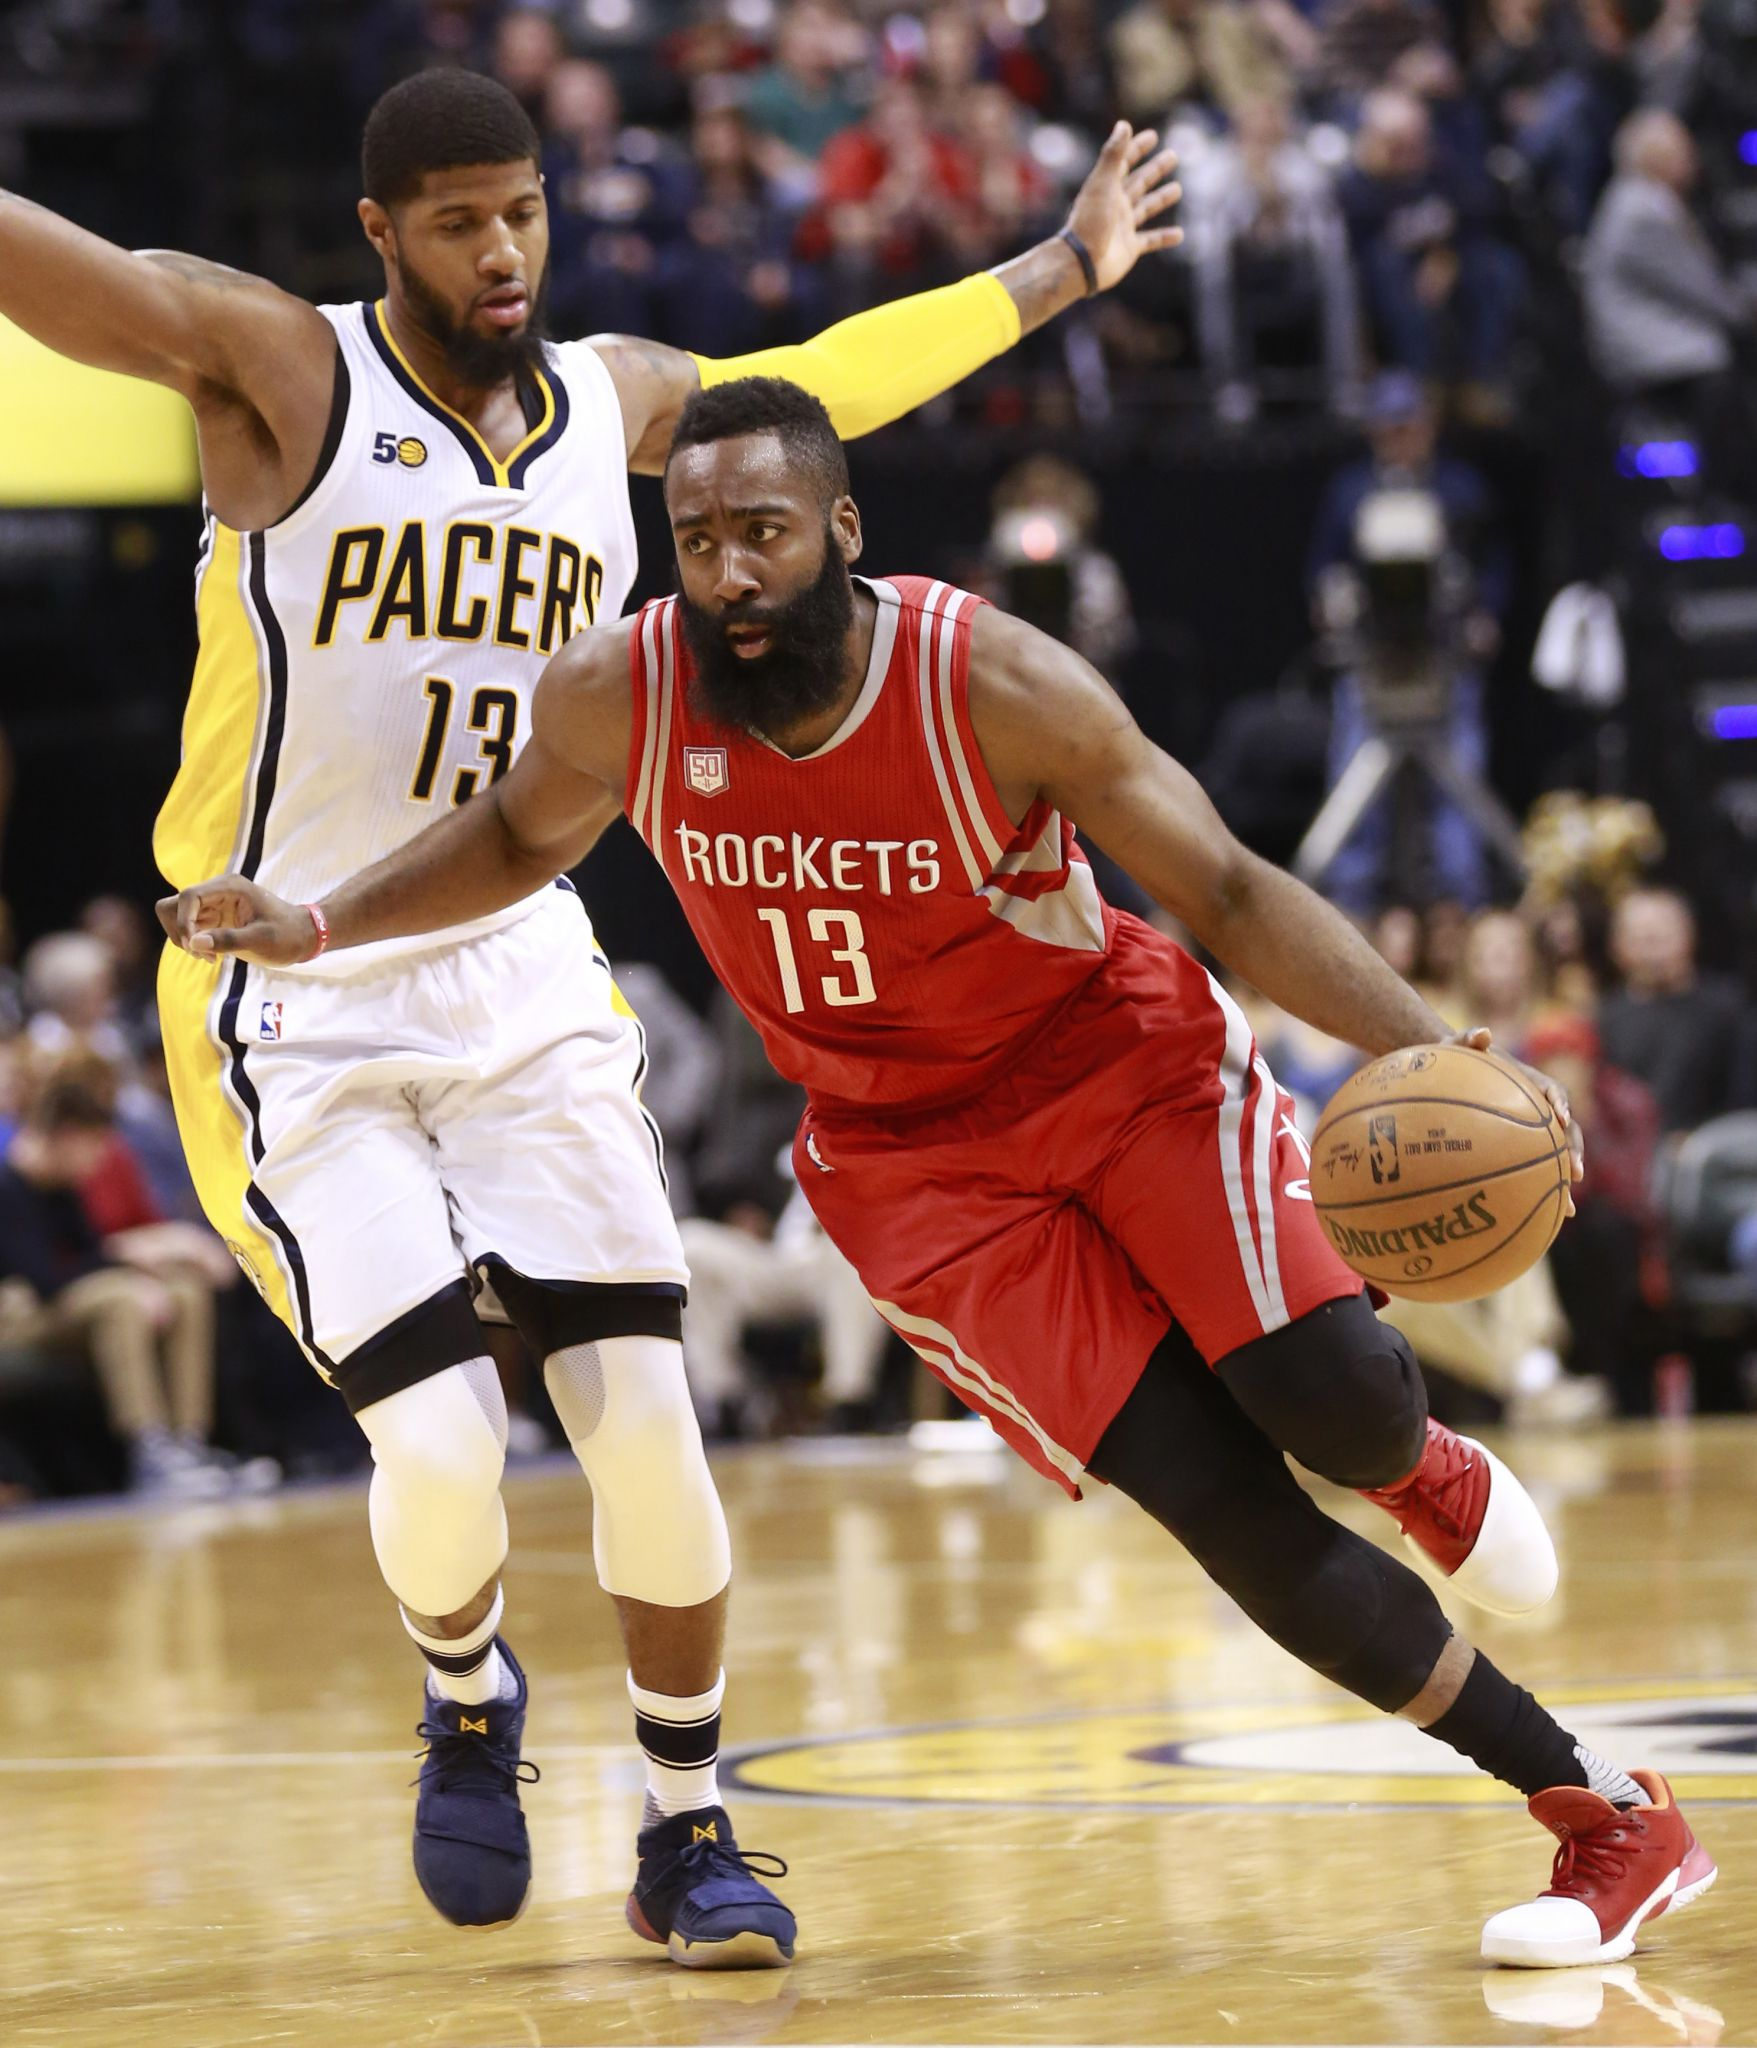 James Harden Nba Records: Pacers' Paul George Shines In Matchup Vs. James Harden